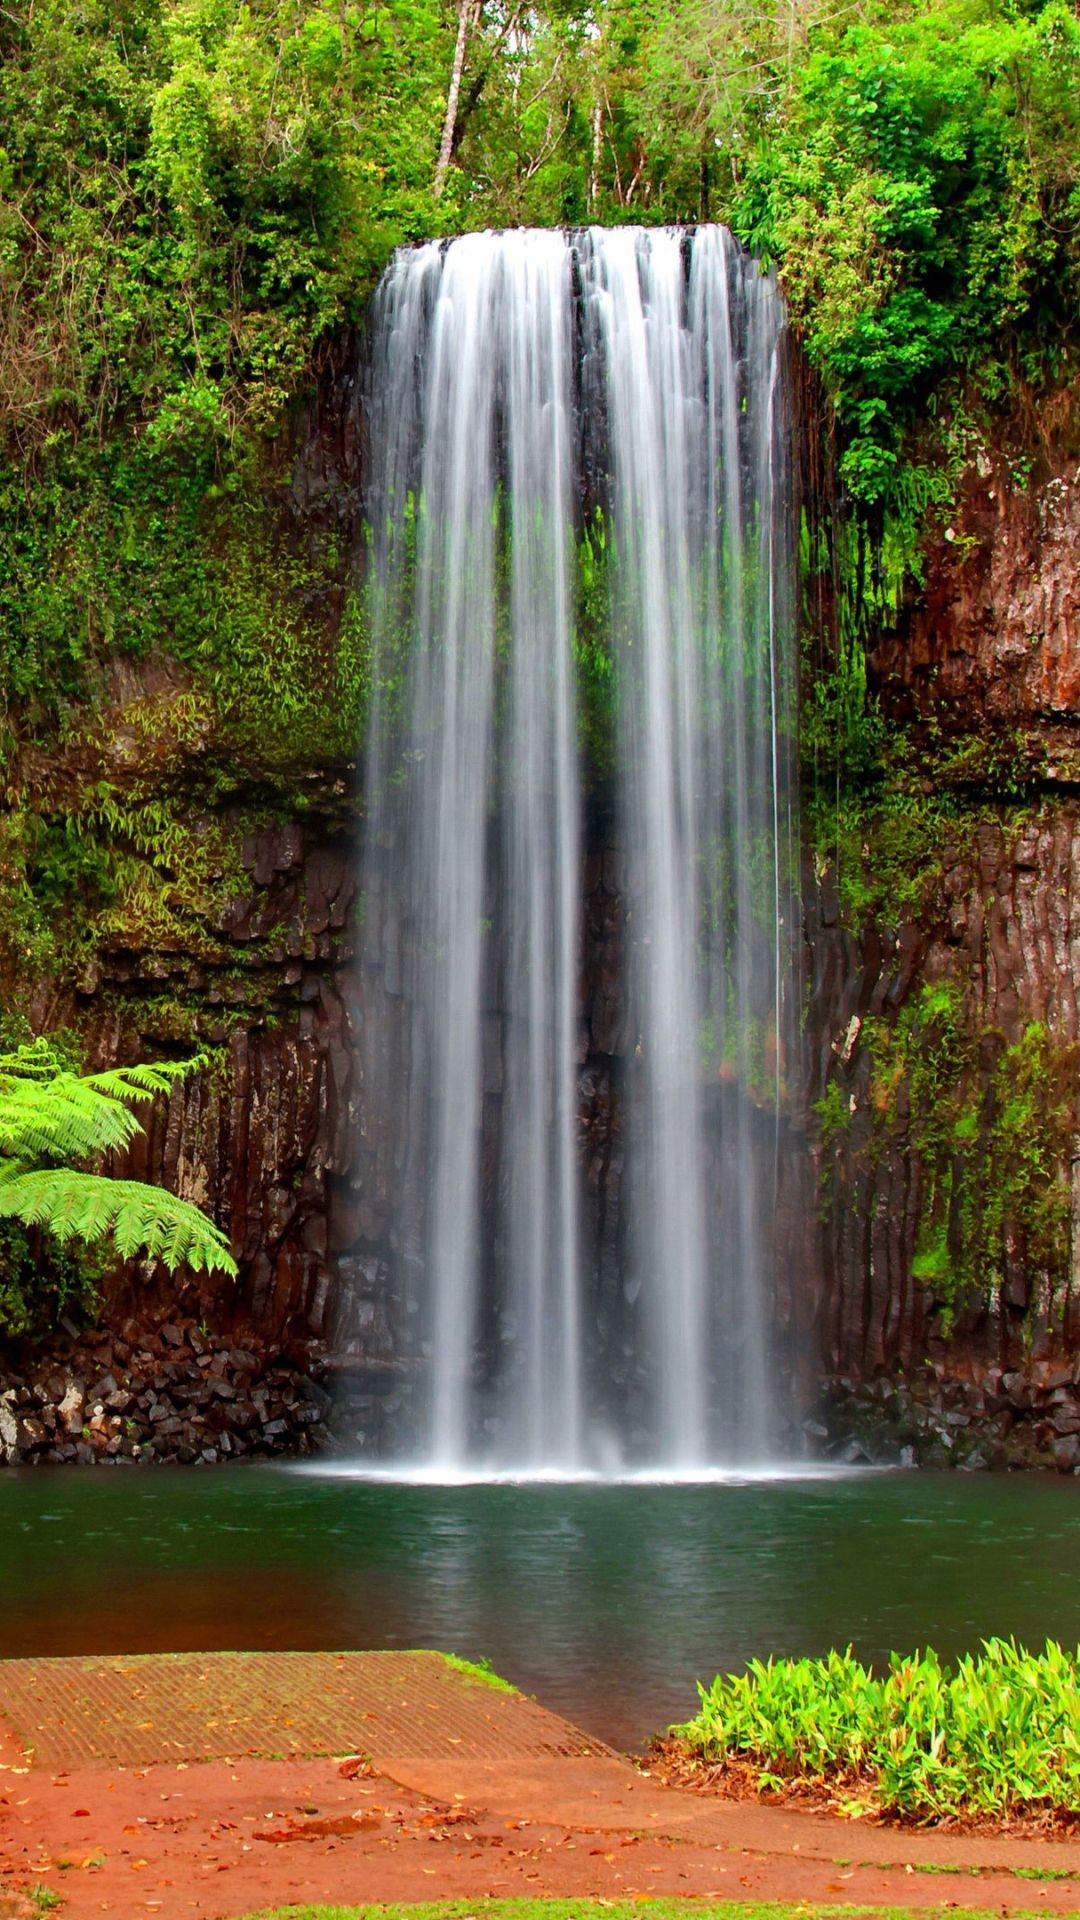 55 Tropical Waterfalls Wallpapers Download At Wallpaperbro Waterfall Wallpaper Waterfall Cool Pictures Of Nature